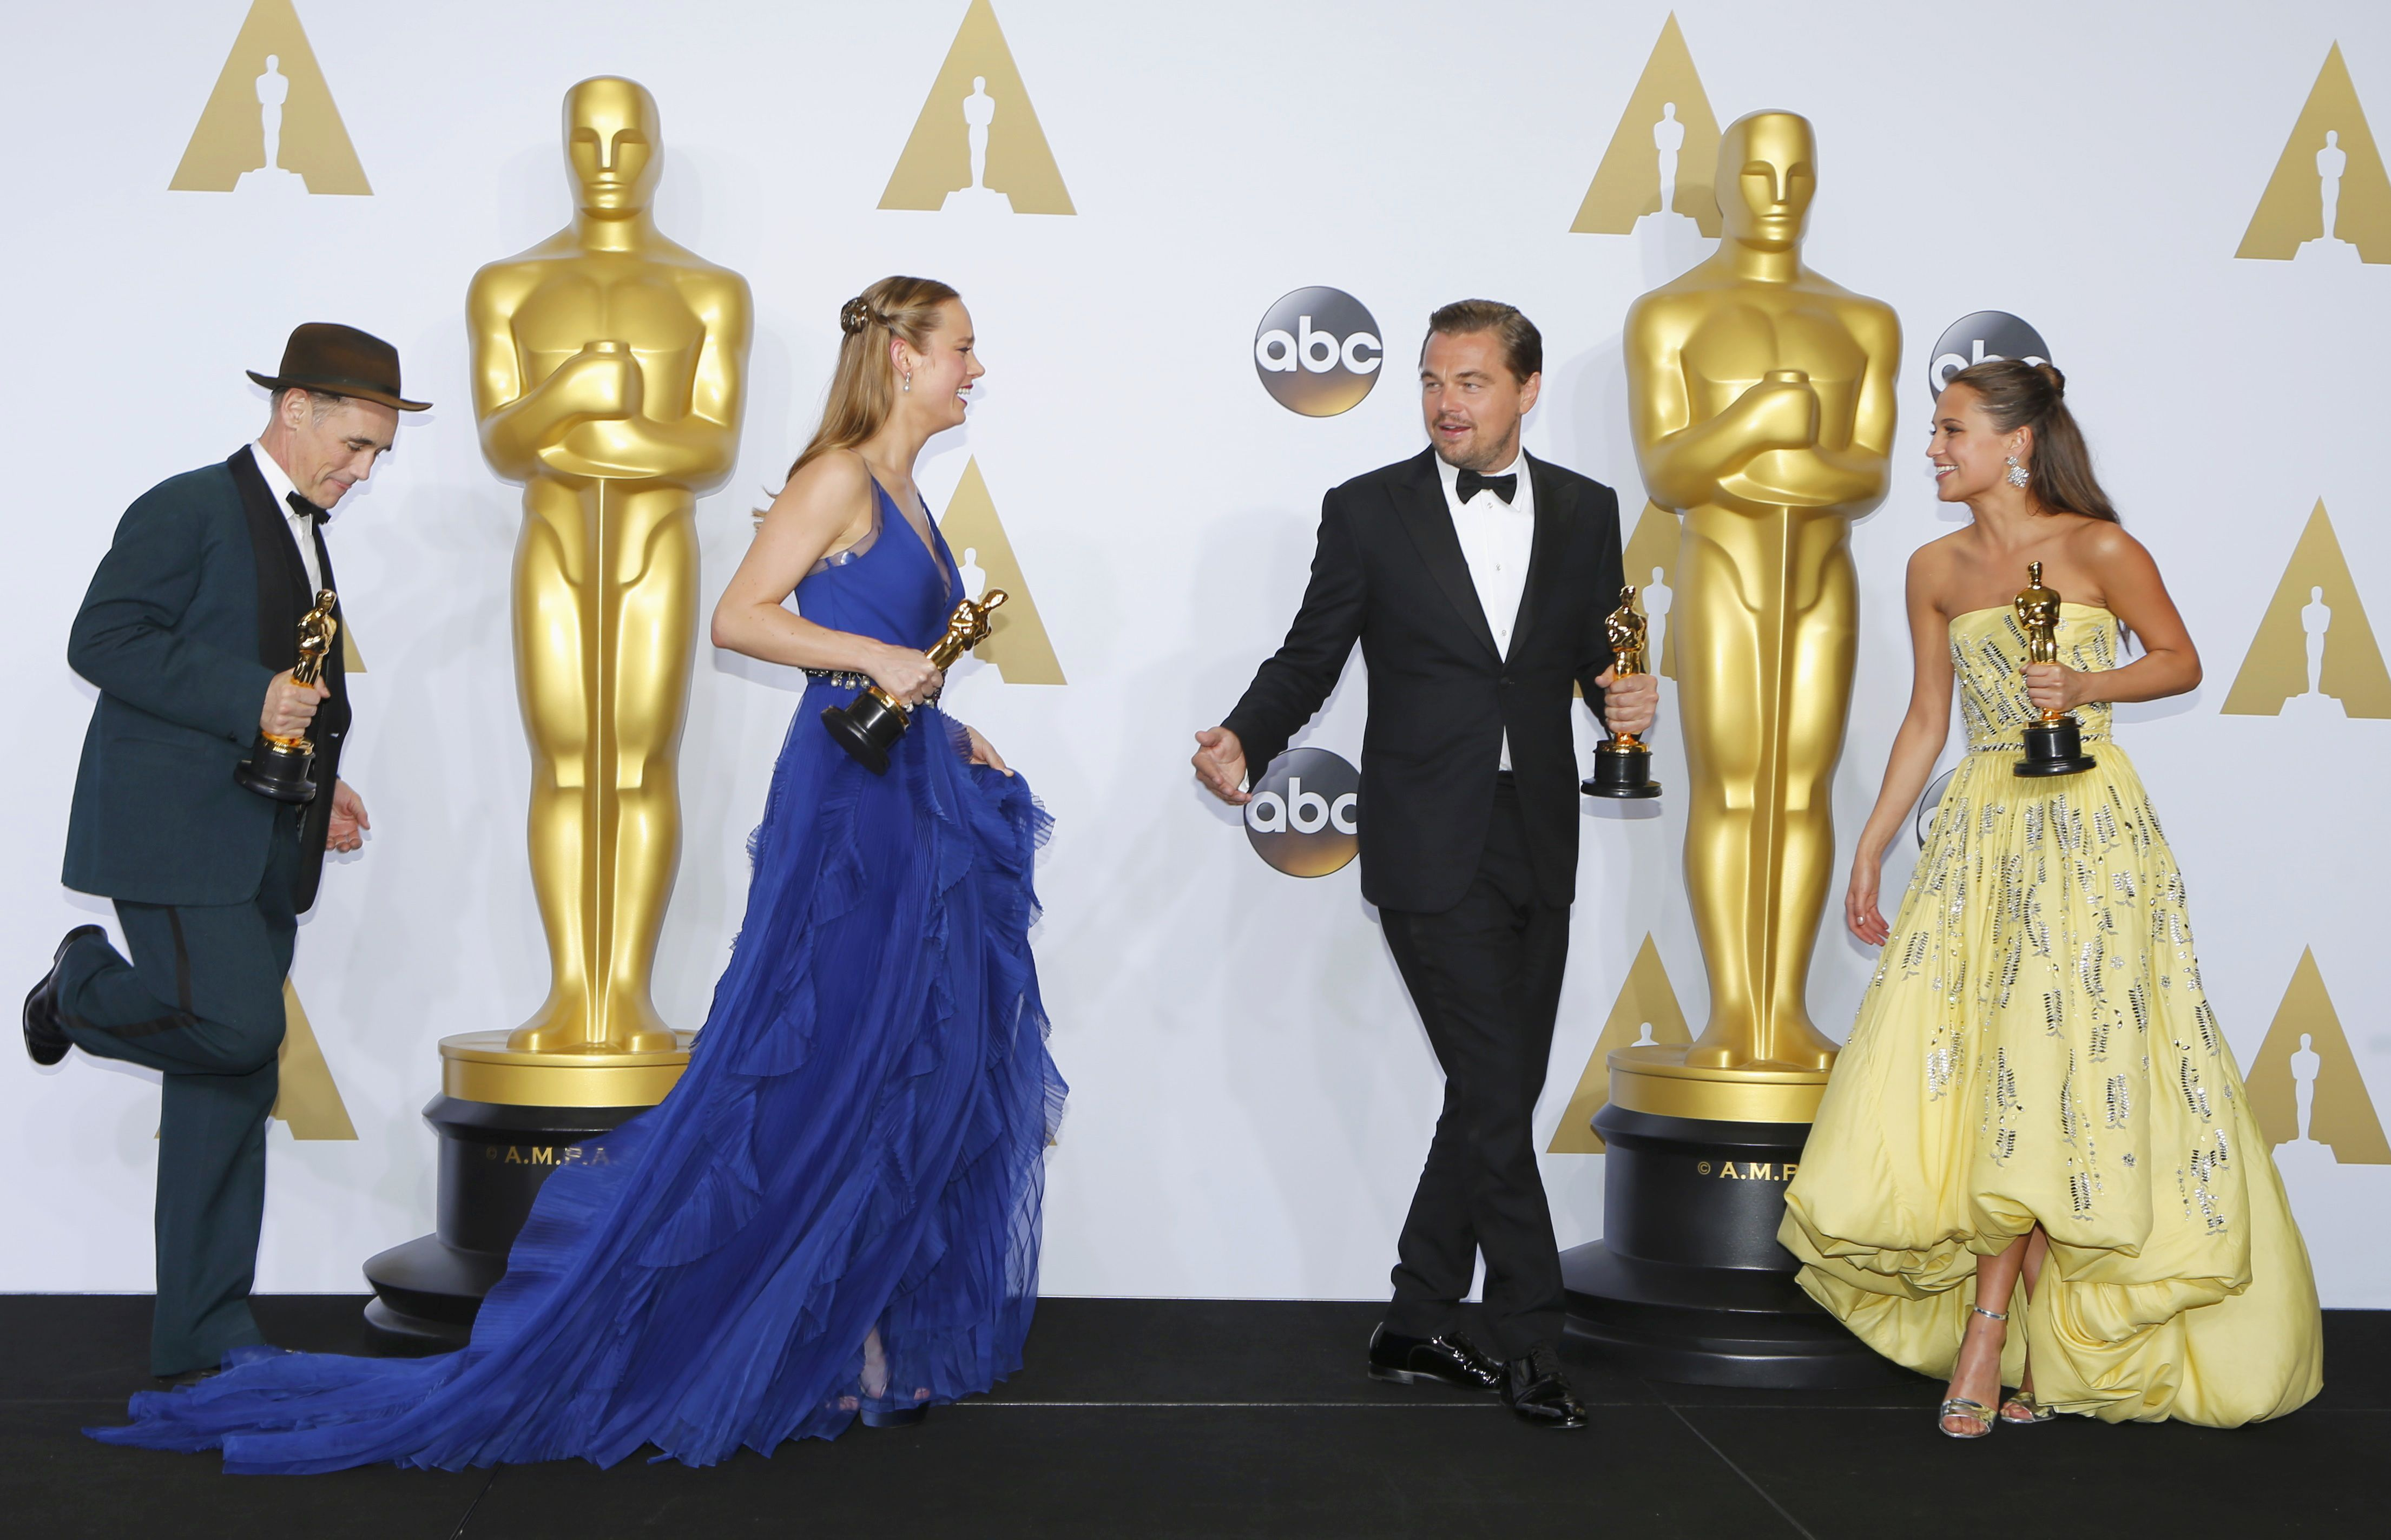 """Best supporting actor Mark Rylance, """"Bridge of Spies"""", Best actress Brie Larson, """"Room"""", best actor Leonardo DiCaprio, """"The Revenant"""" and best supporting actress Alicia Vikander, """"The Danish Girl"""", are seen dduring the 88th Academy Awards in Hollywood, California February 28, 2016.  REUTERS/Mike Blake"""